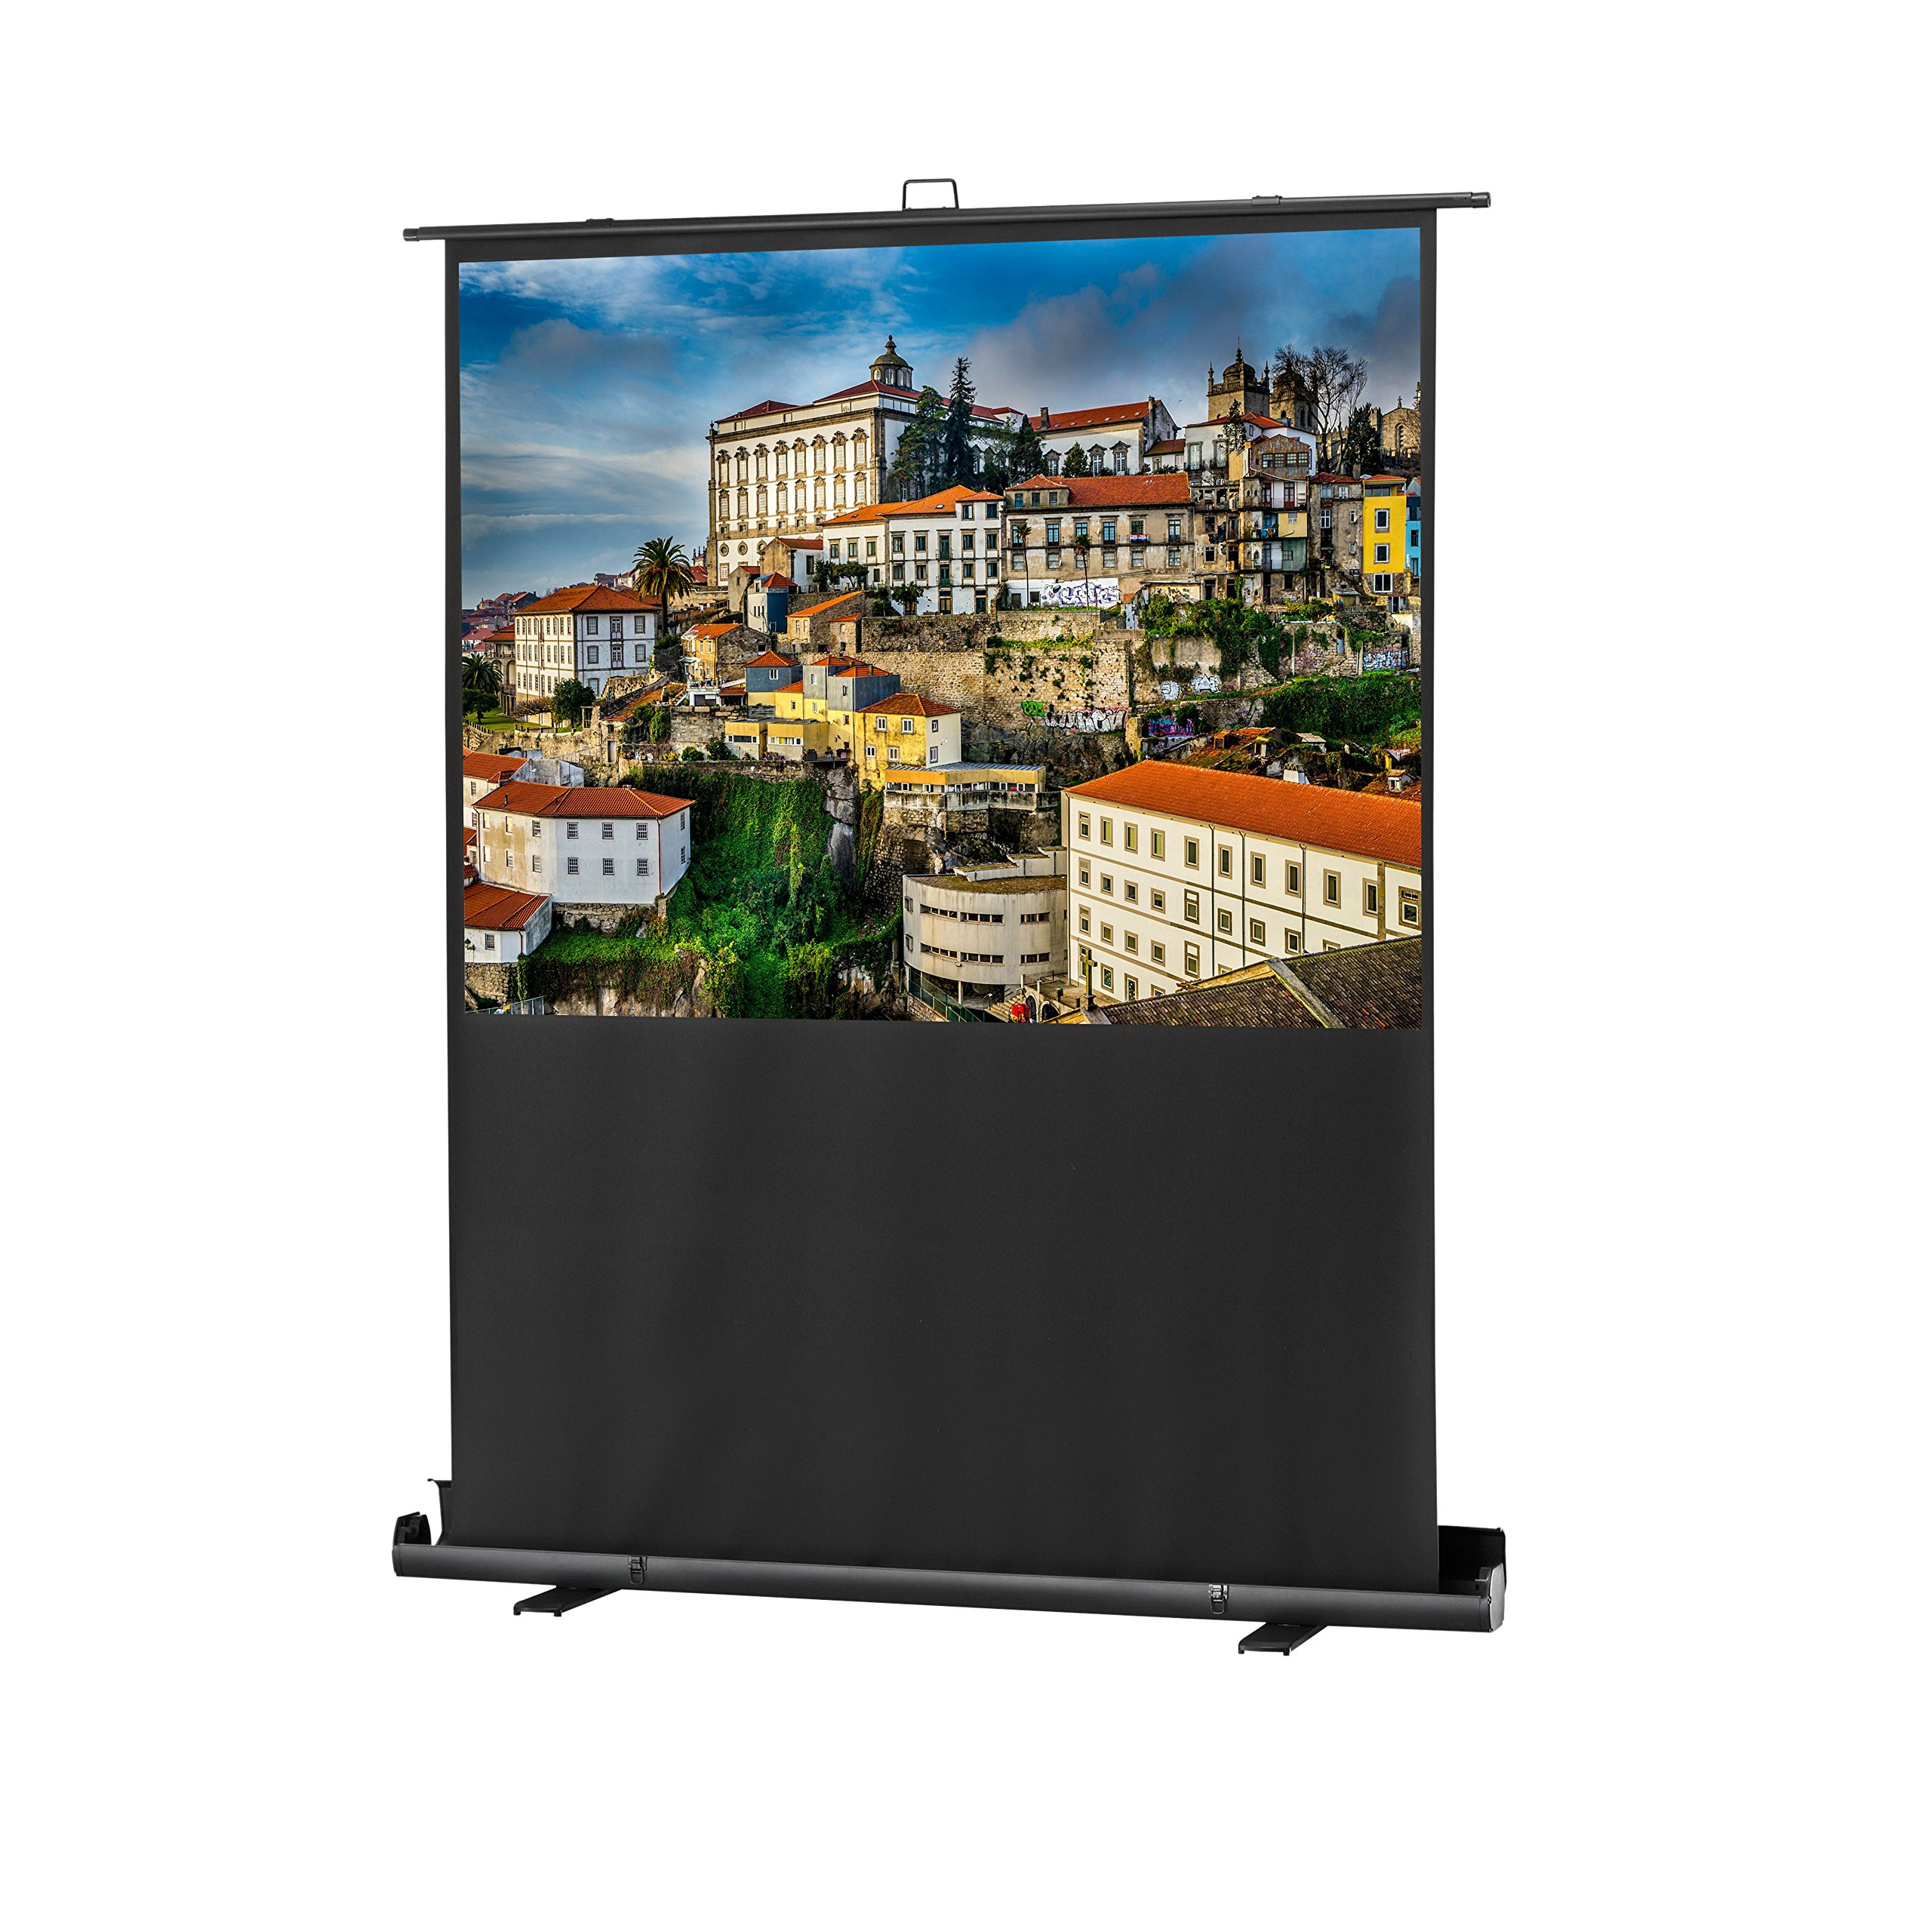 celexon 79'' Mobile Projector Screen Professional Plus | 4:3 format | Portable projector screen | 60'' x 45'' Viewing Area | Pneumatic Lift | 3-ply PVC Fabric by celexon